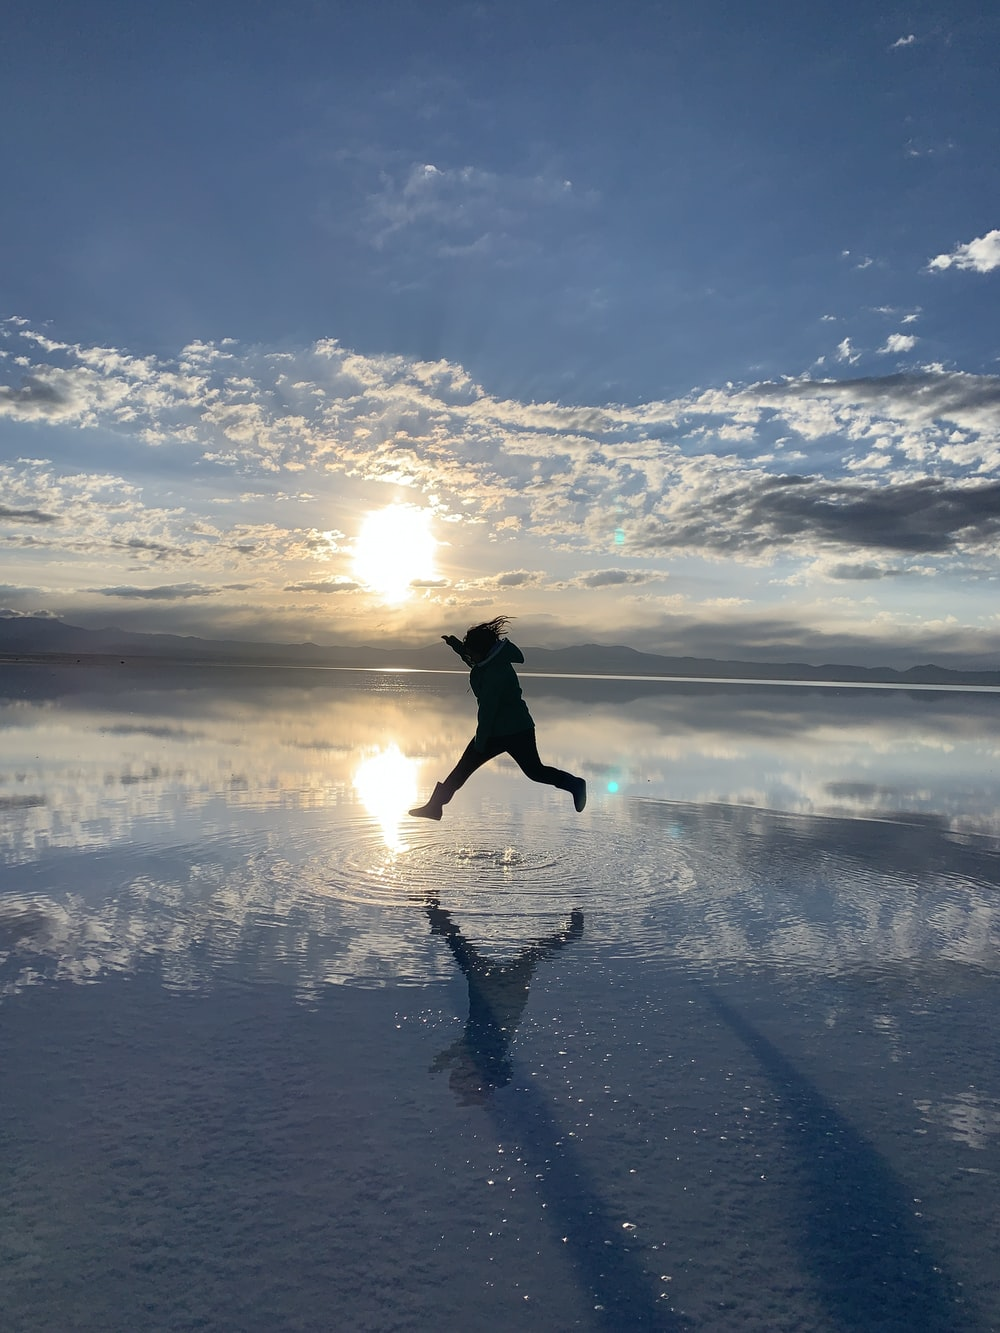 woman in black jacket and pants jumping on snow covered ground under blue and white cloudy